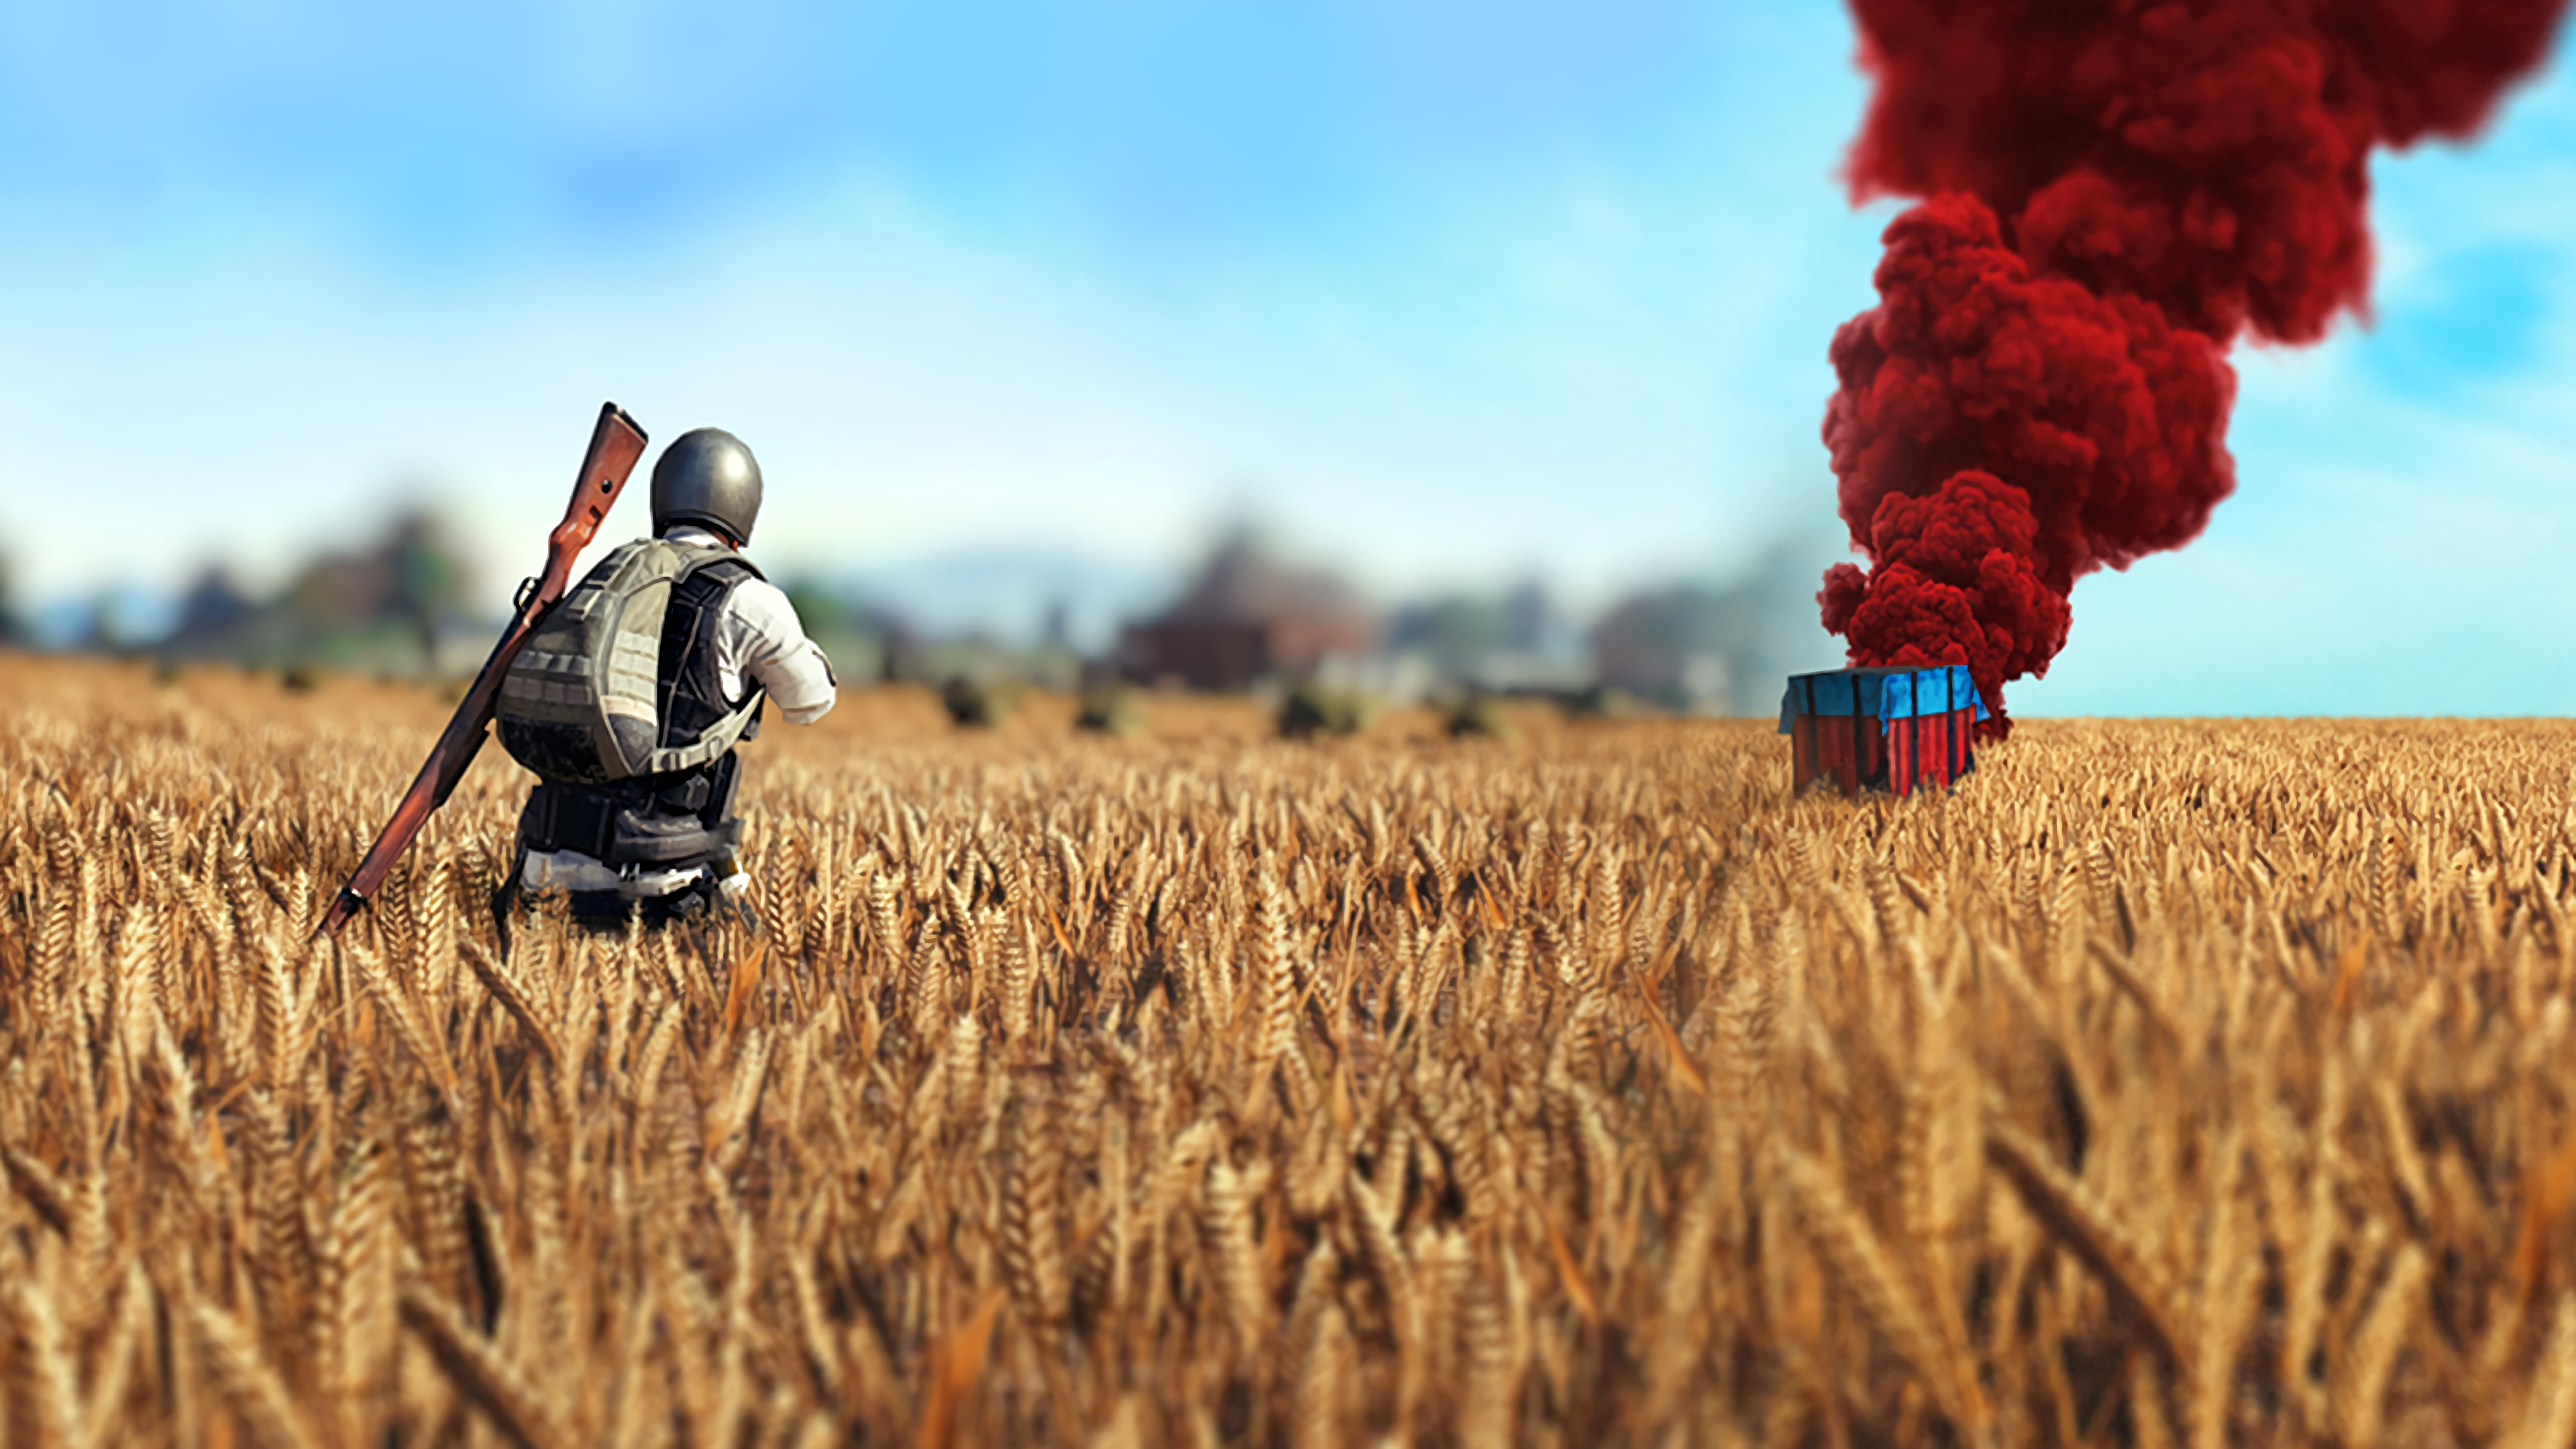 Pubg Wallpaper Themes: PUBG Playerunknowns Battlegrounds Background 3